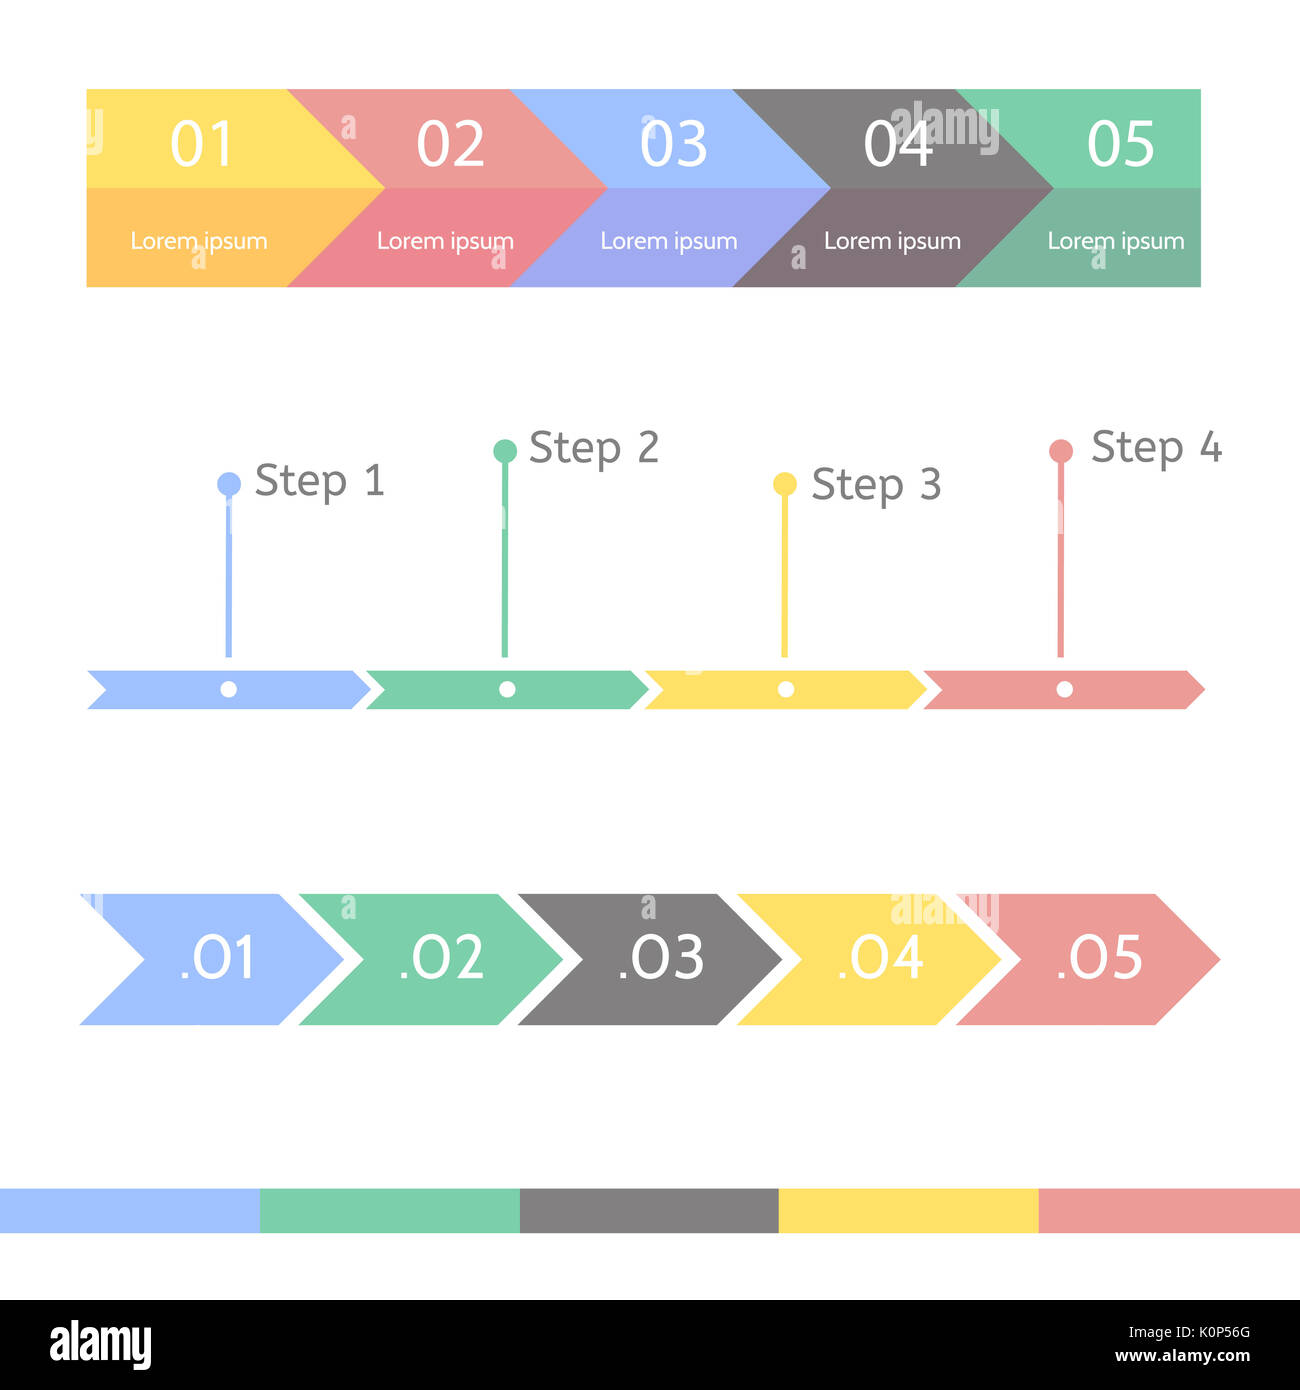 Progress bar statistic concept. Business process step by step. Timeline statistical chart. Infographic template for presentation. - Stock Image